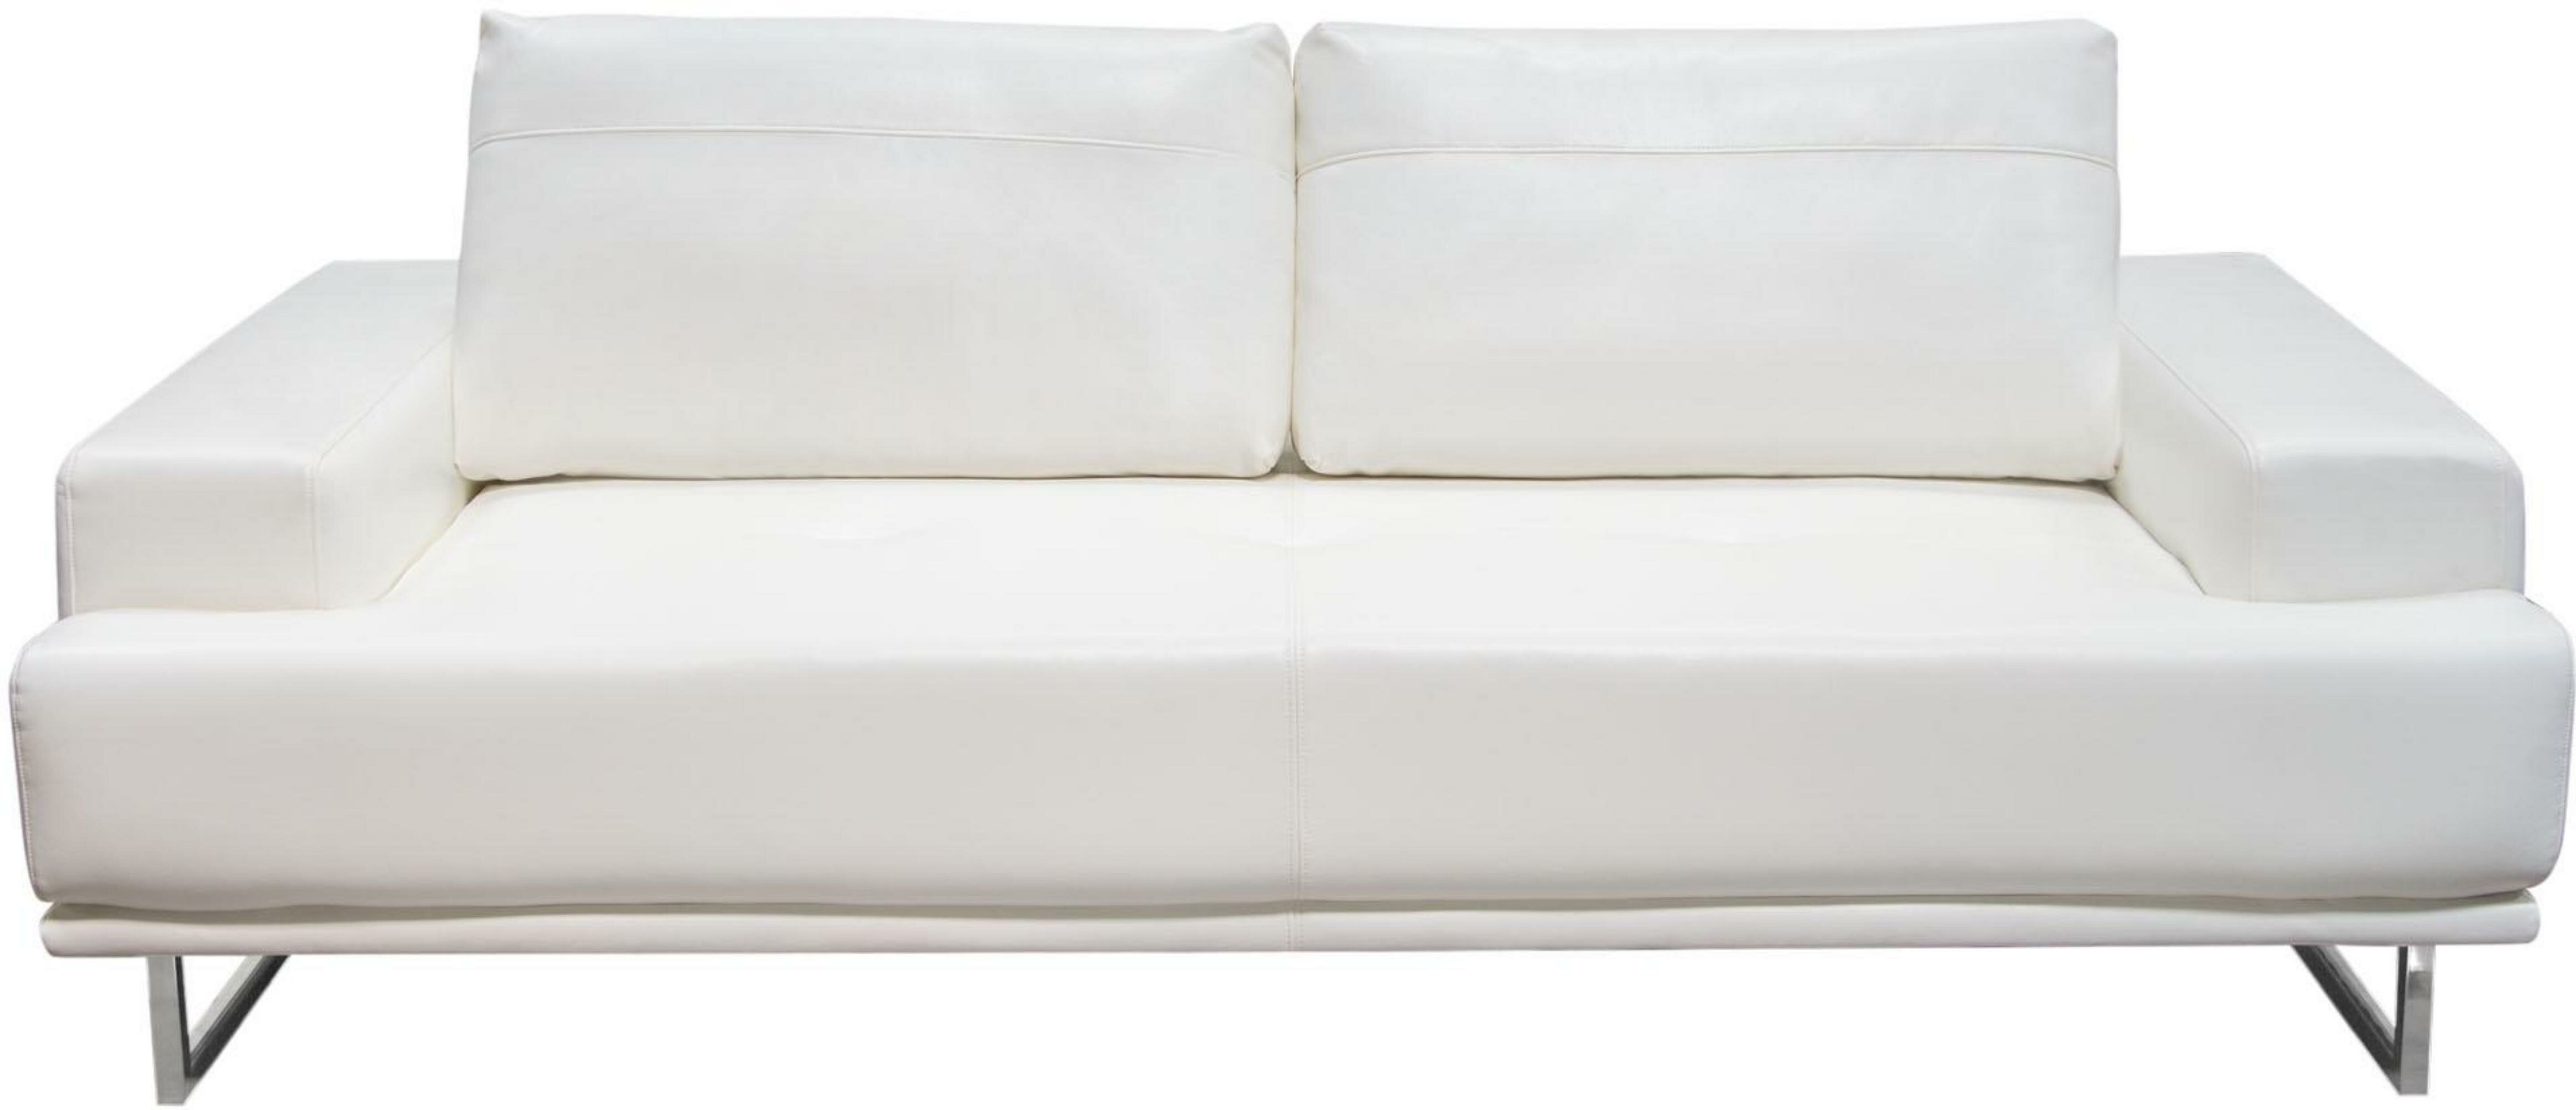 Swell Kalista Adjustable Backrest Sofa Onthecornerstone Fun Painted Chair Ideas Images Onthecornerstoneorg